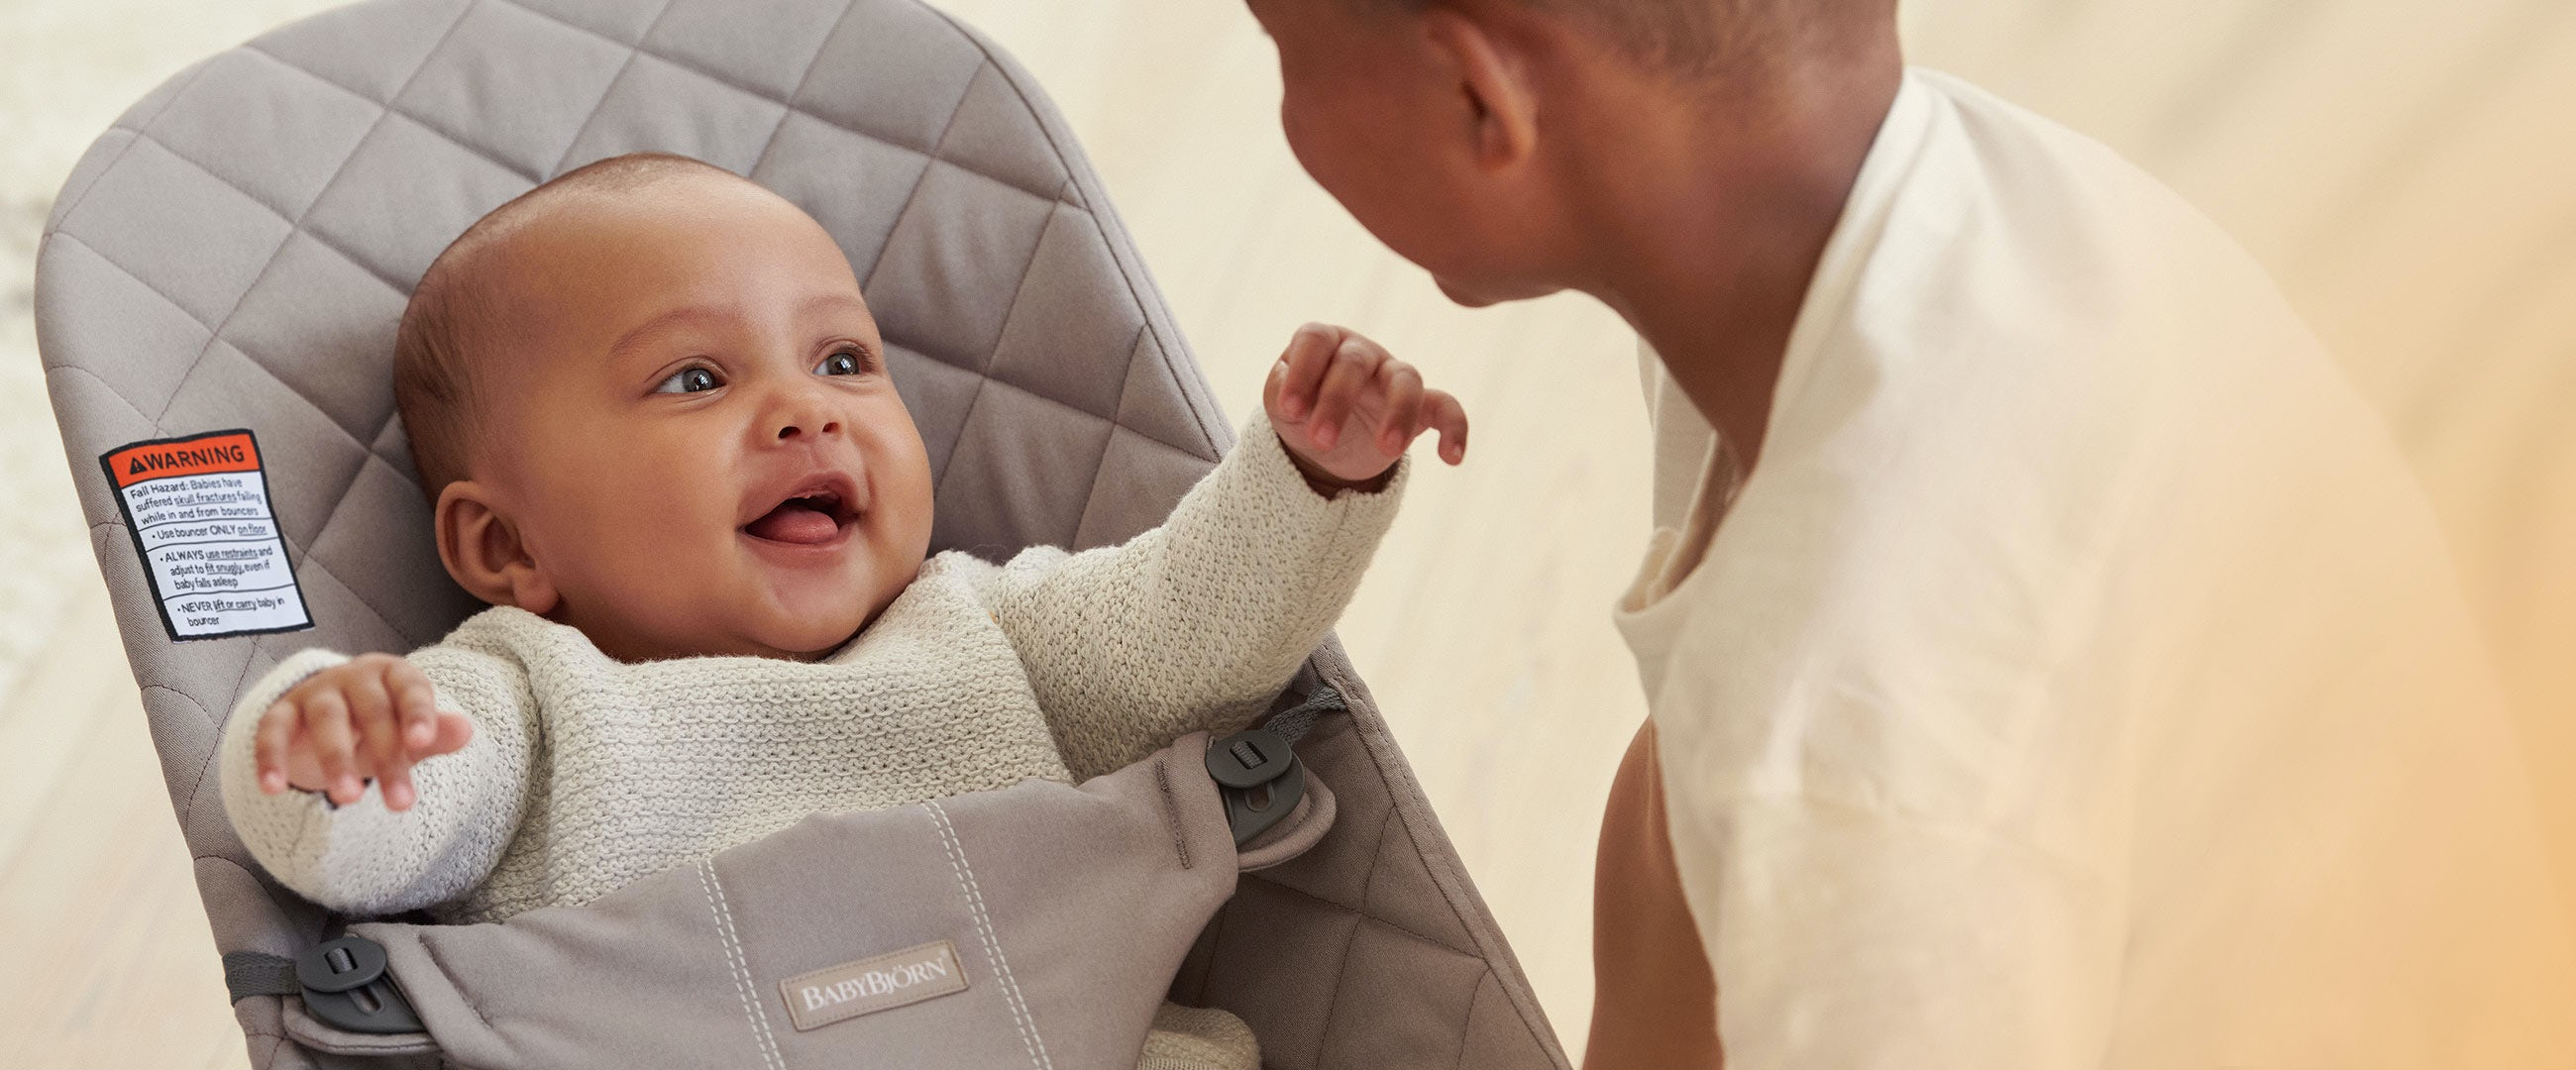 BABYBJÖRN—official website with useful baby products